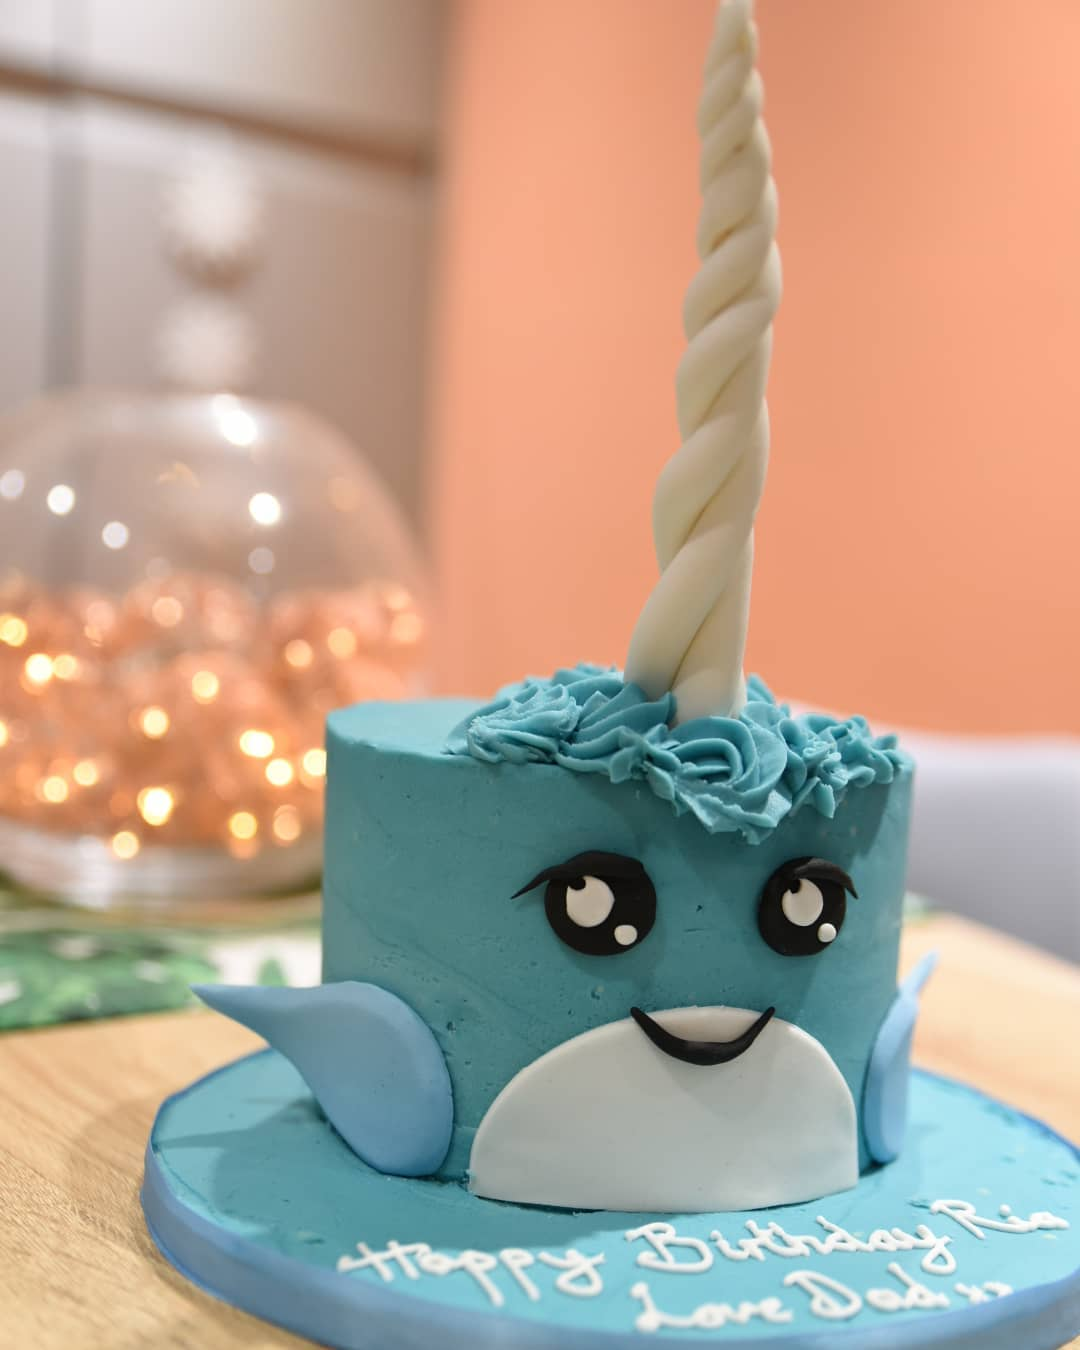 Celebration Cake Narwhal Character